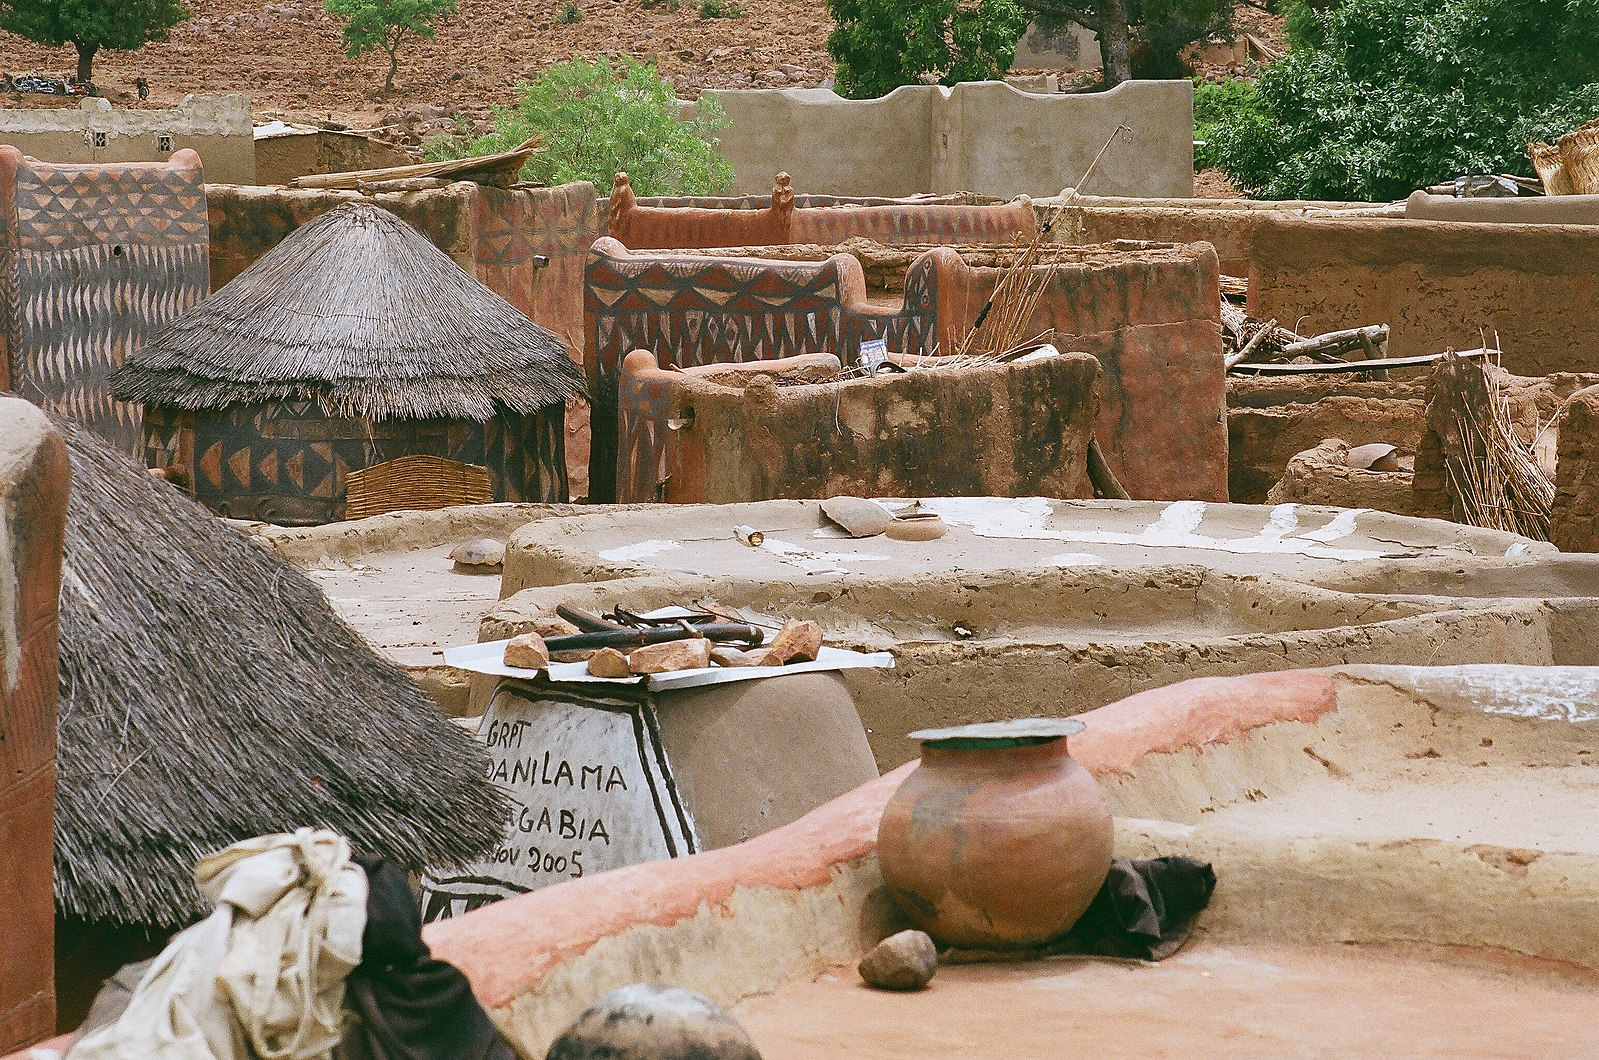 https://commons.wikimedia.org/wiki/File:Tiebele_village_in_Burkina_Faso_02.jpg